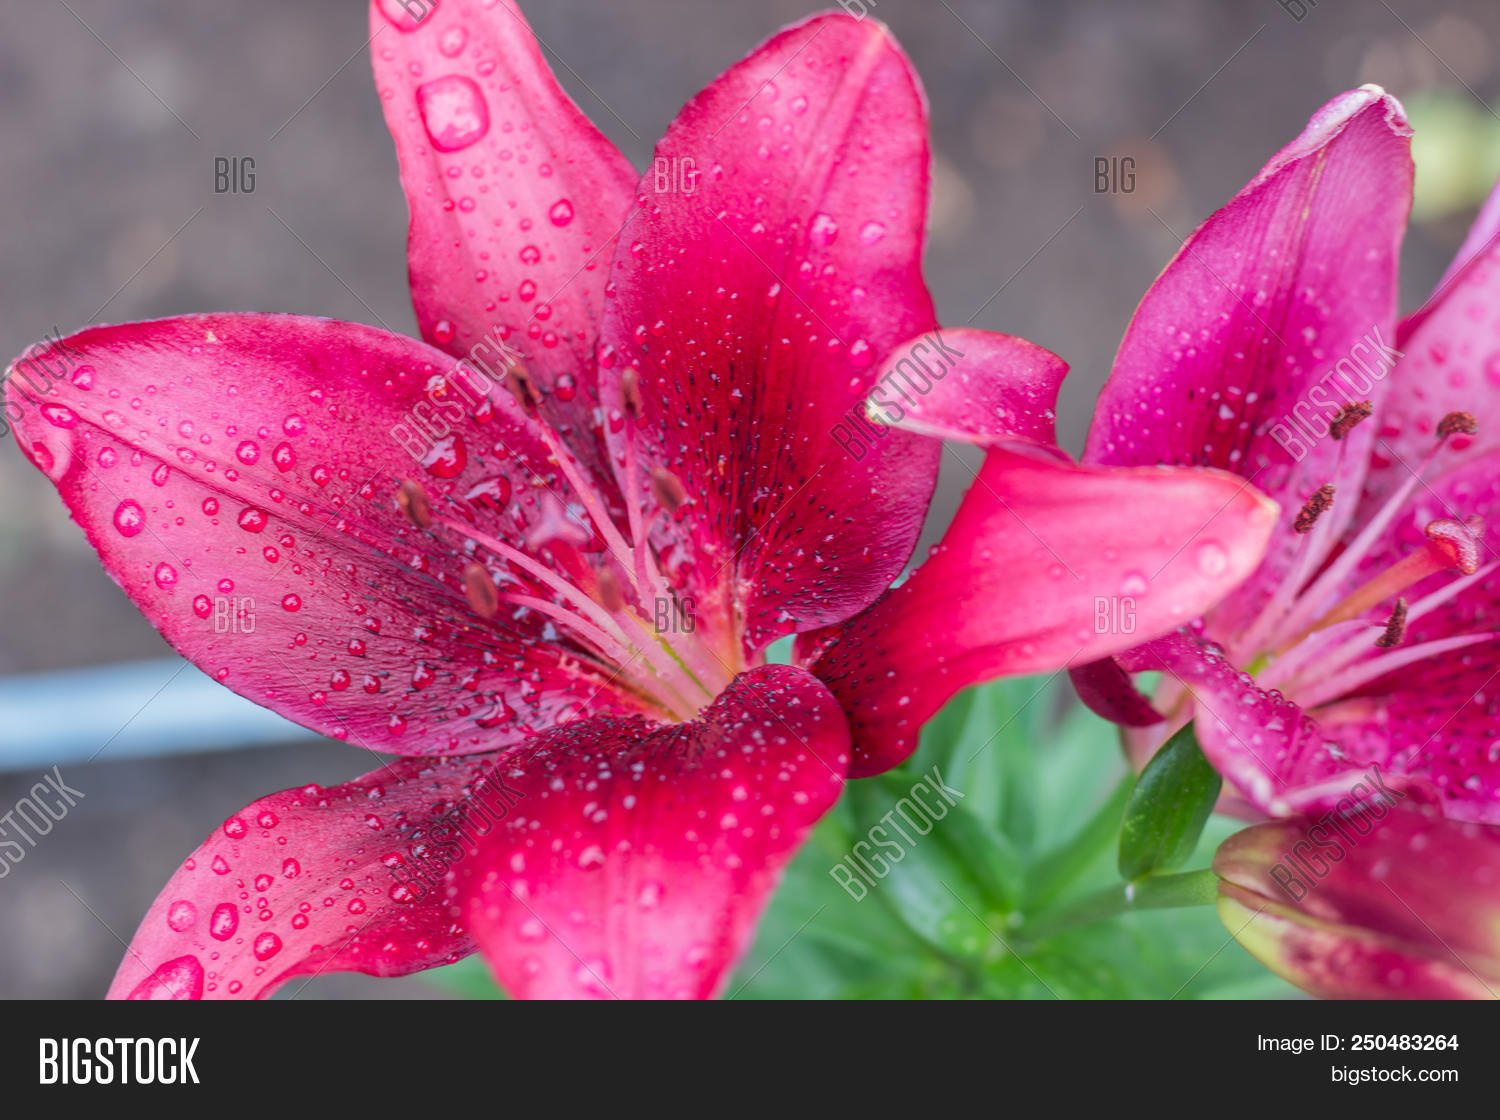 beautiful pink lily flowers in drops of water after a rain a background izmirmasajfo